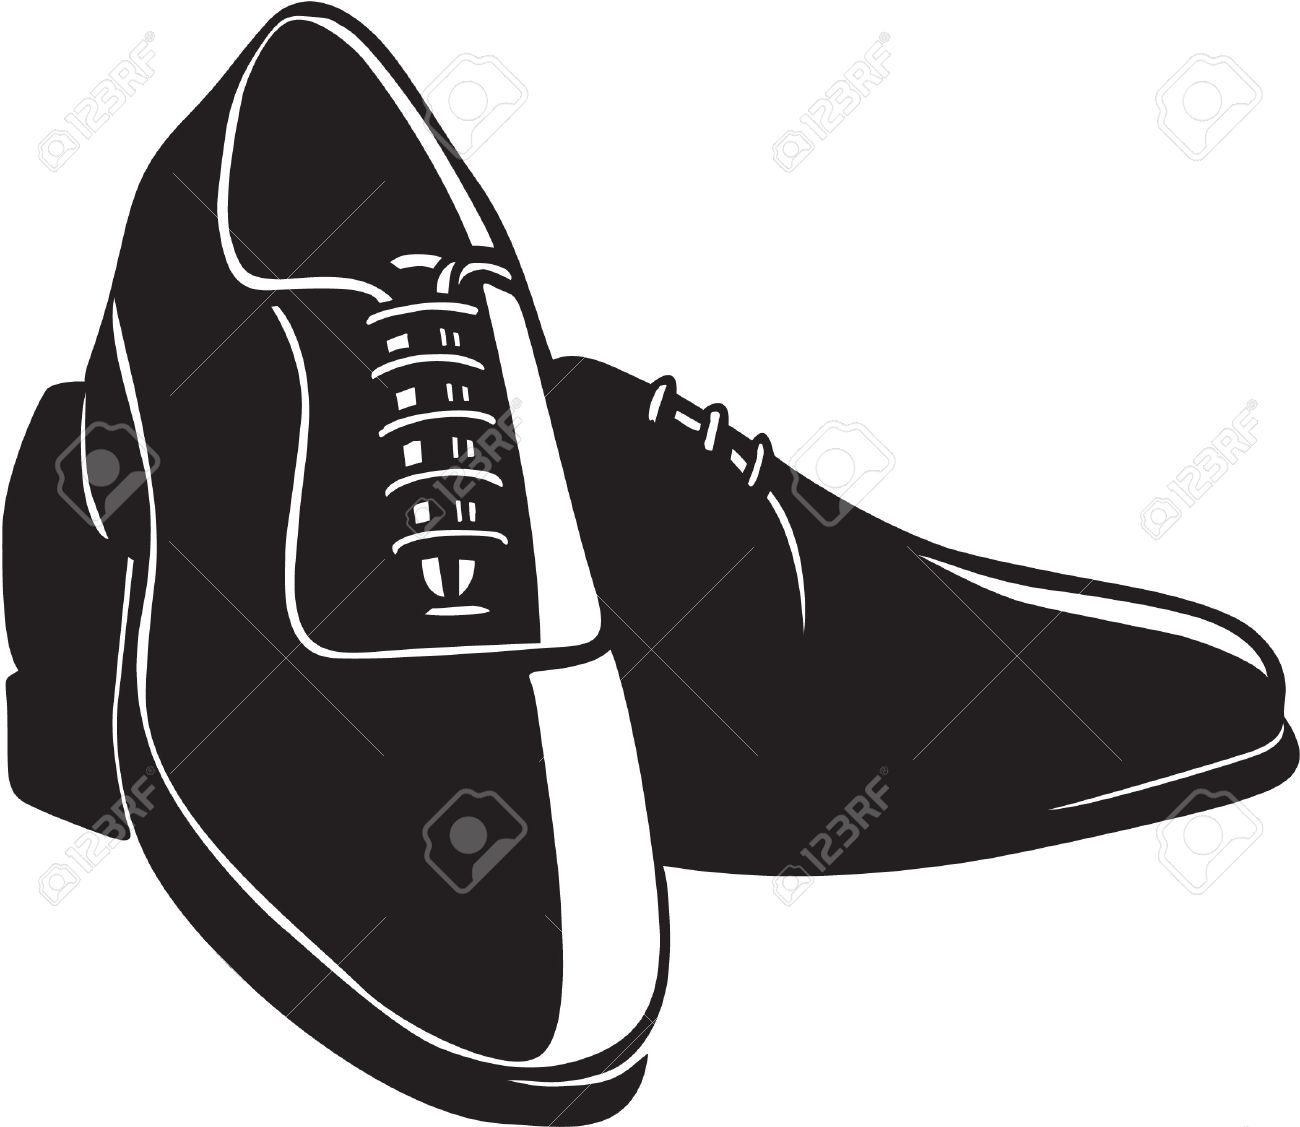 Casual shoes clipart banner transparent stock Dress shoes clipart 4 » Clipart Station banner transparent stock